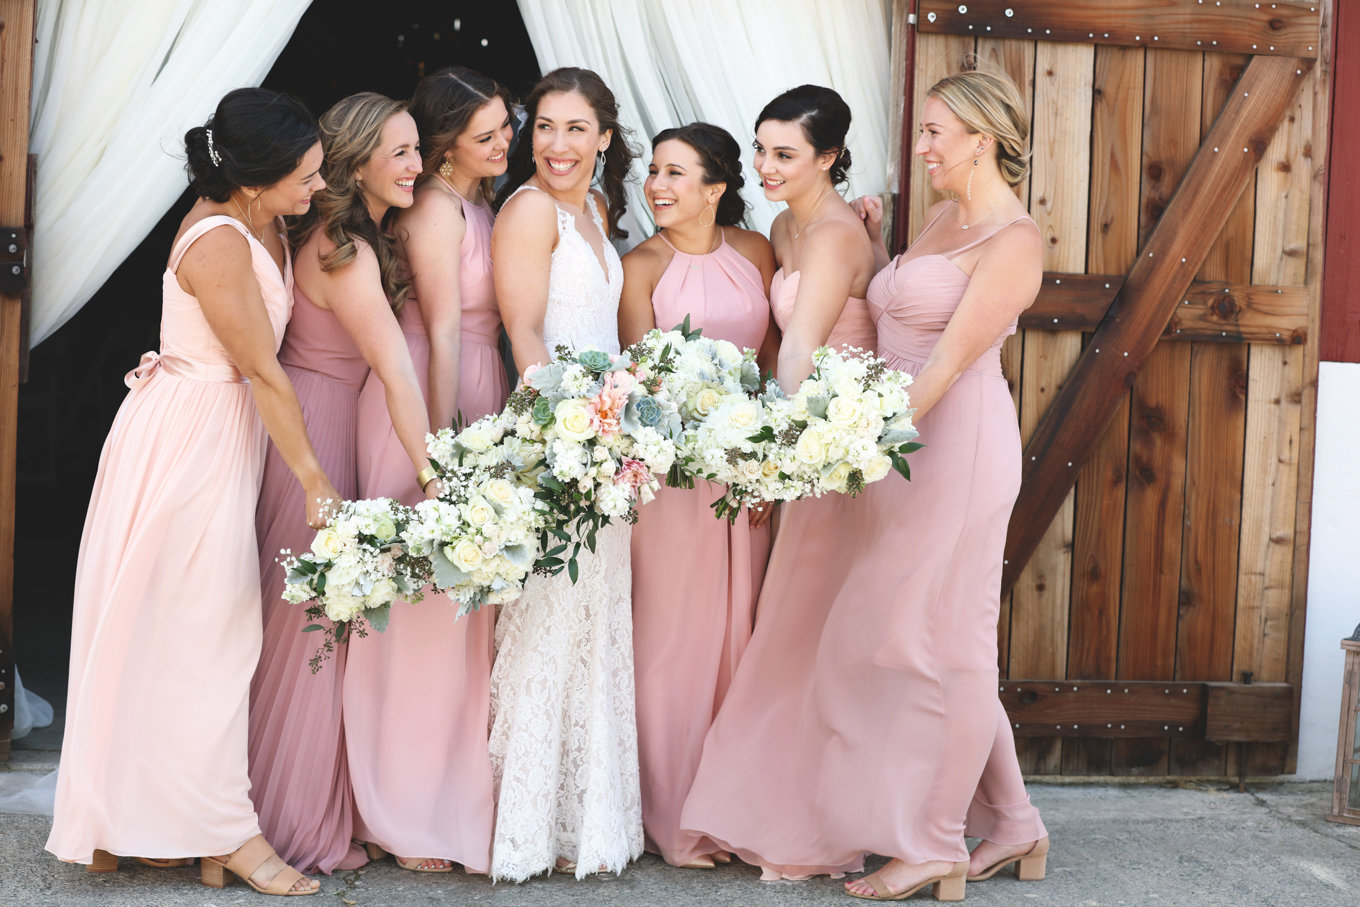 Bridal party at beautiful rustic wedding in northern california